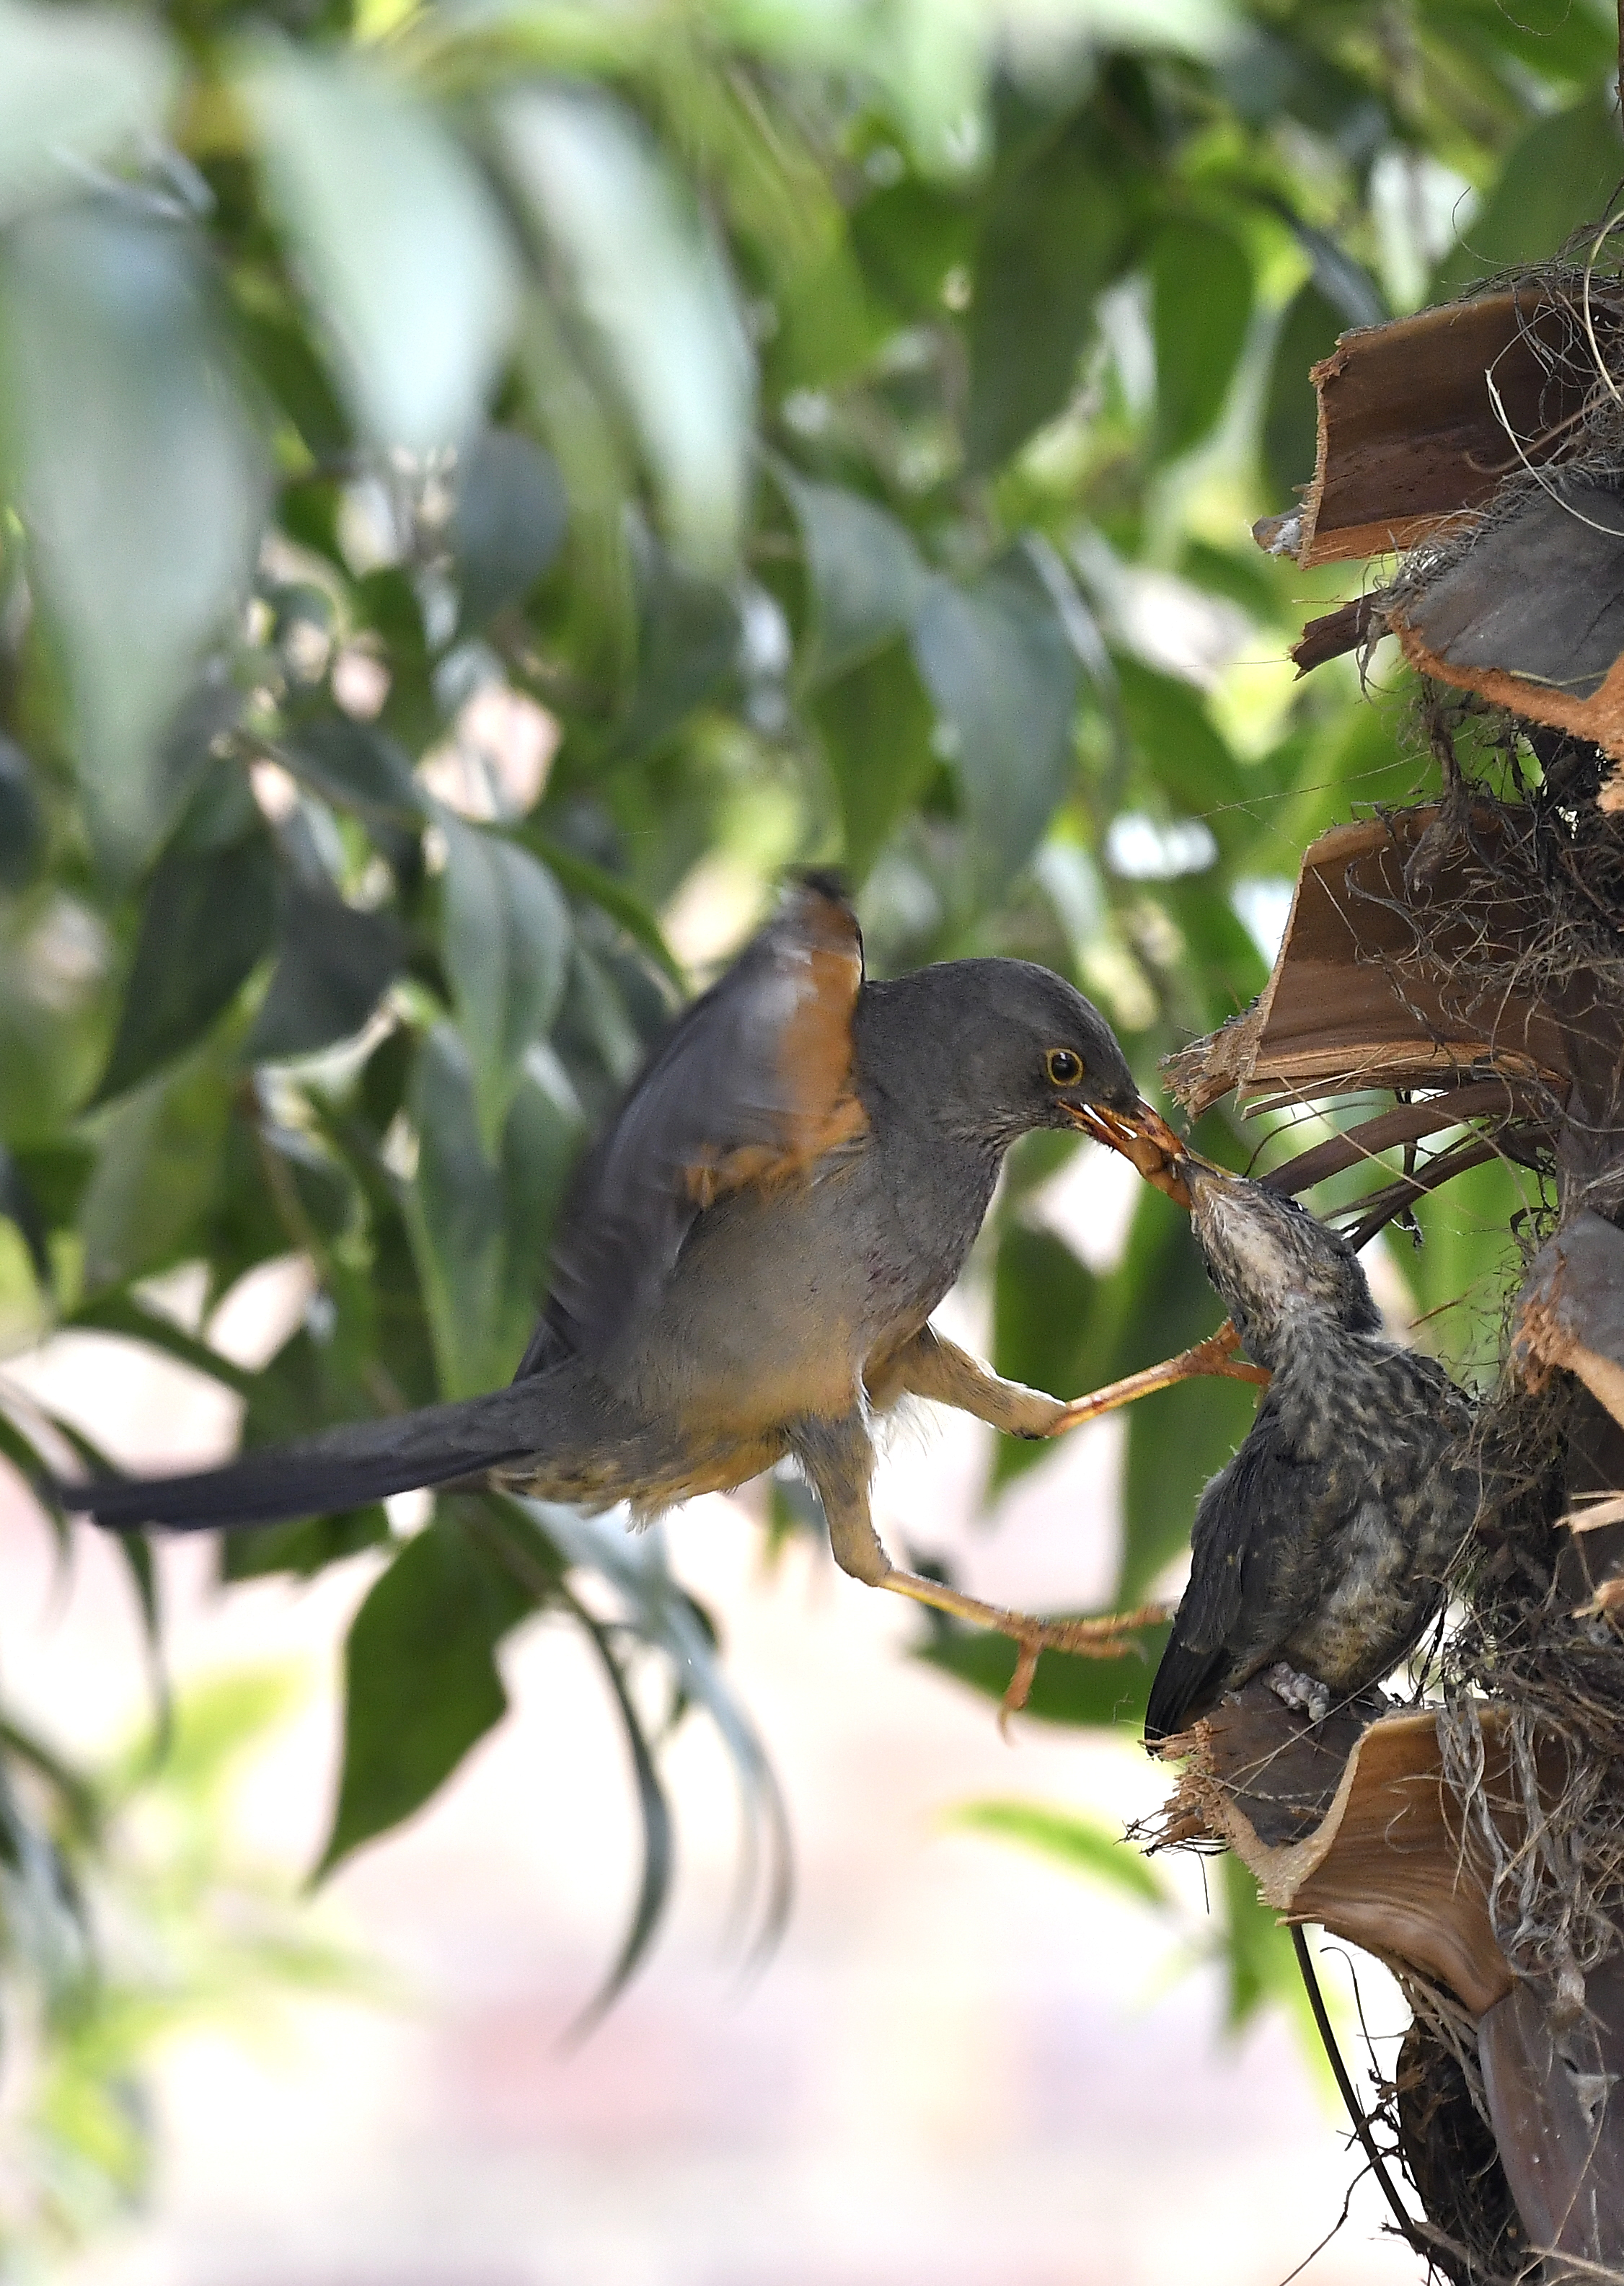 Adult and baby Olive Thrush